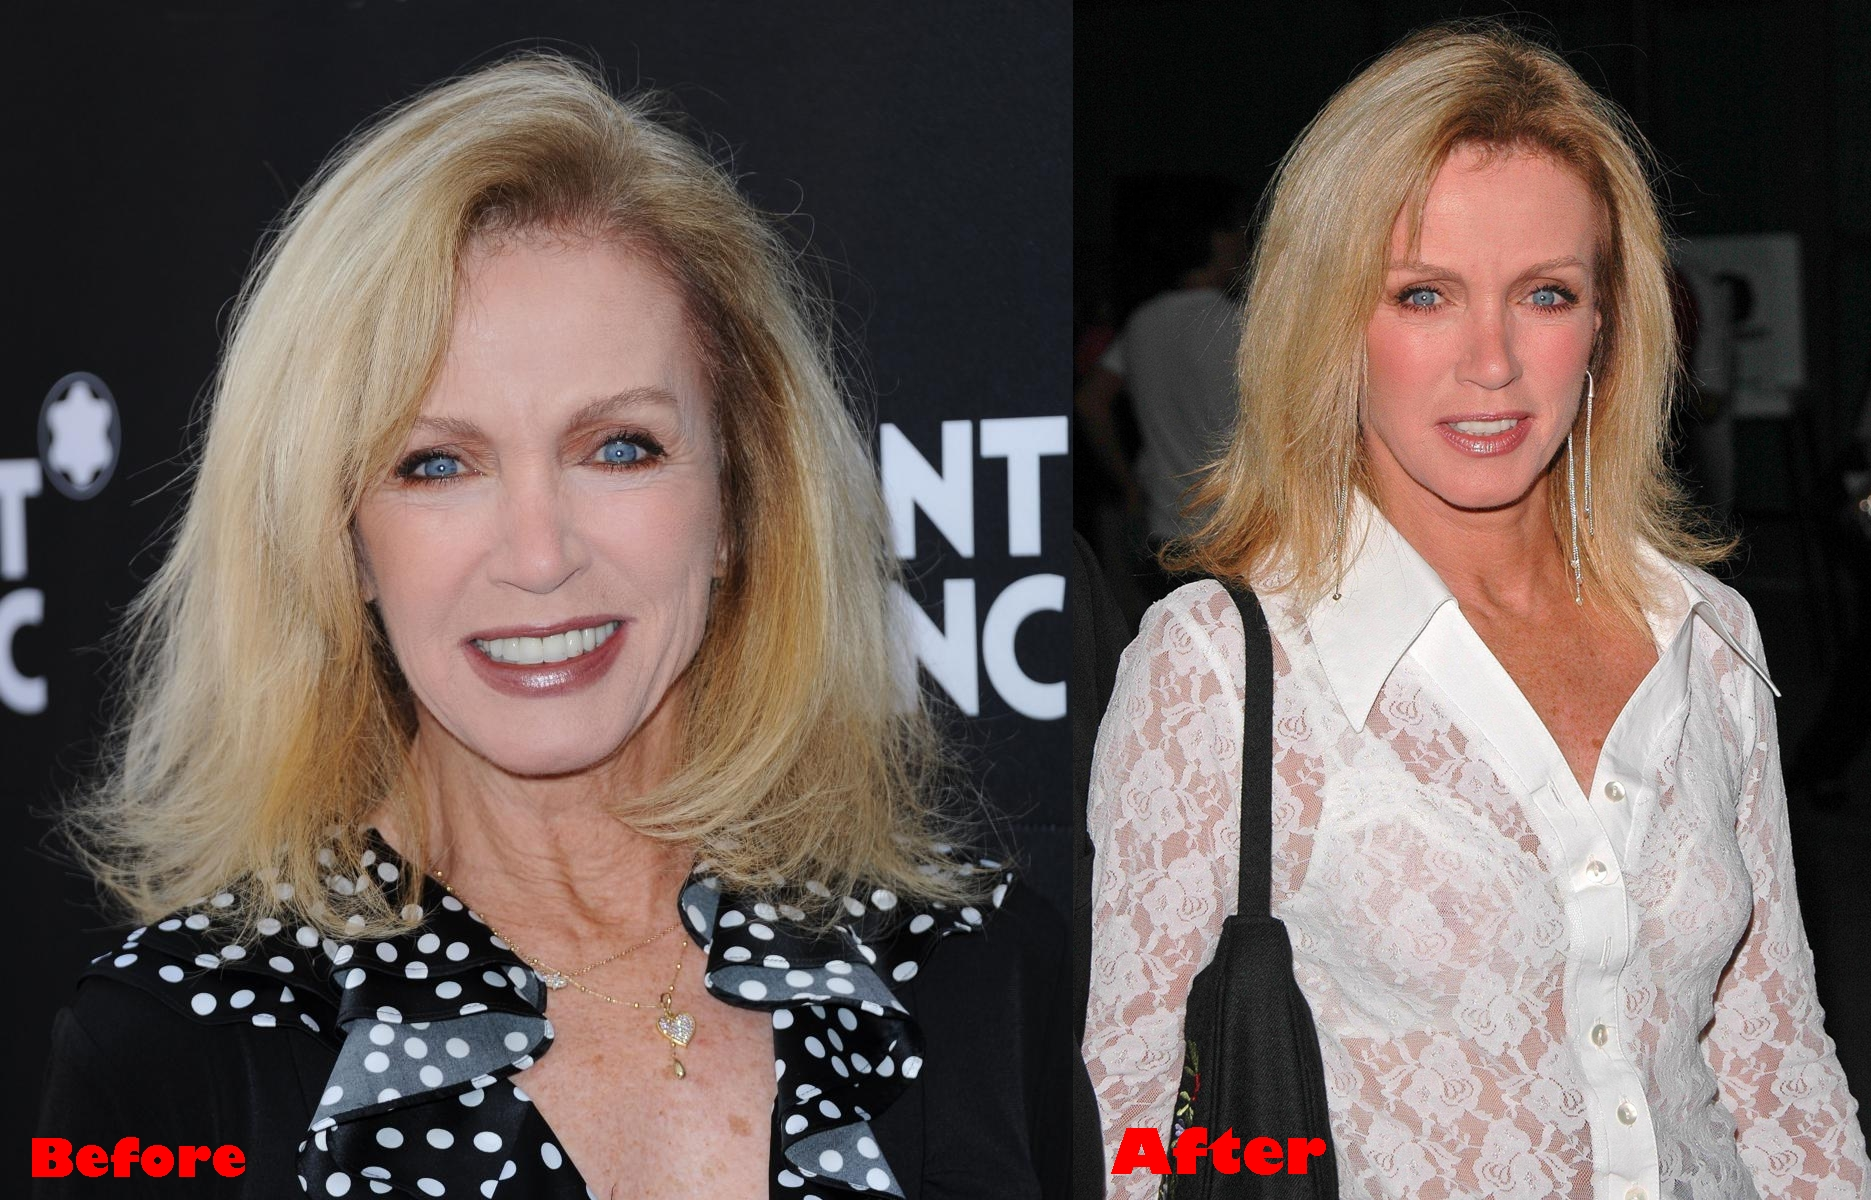 Donna Mills plastic surgery before and after photos, pictures